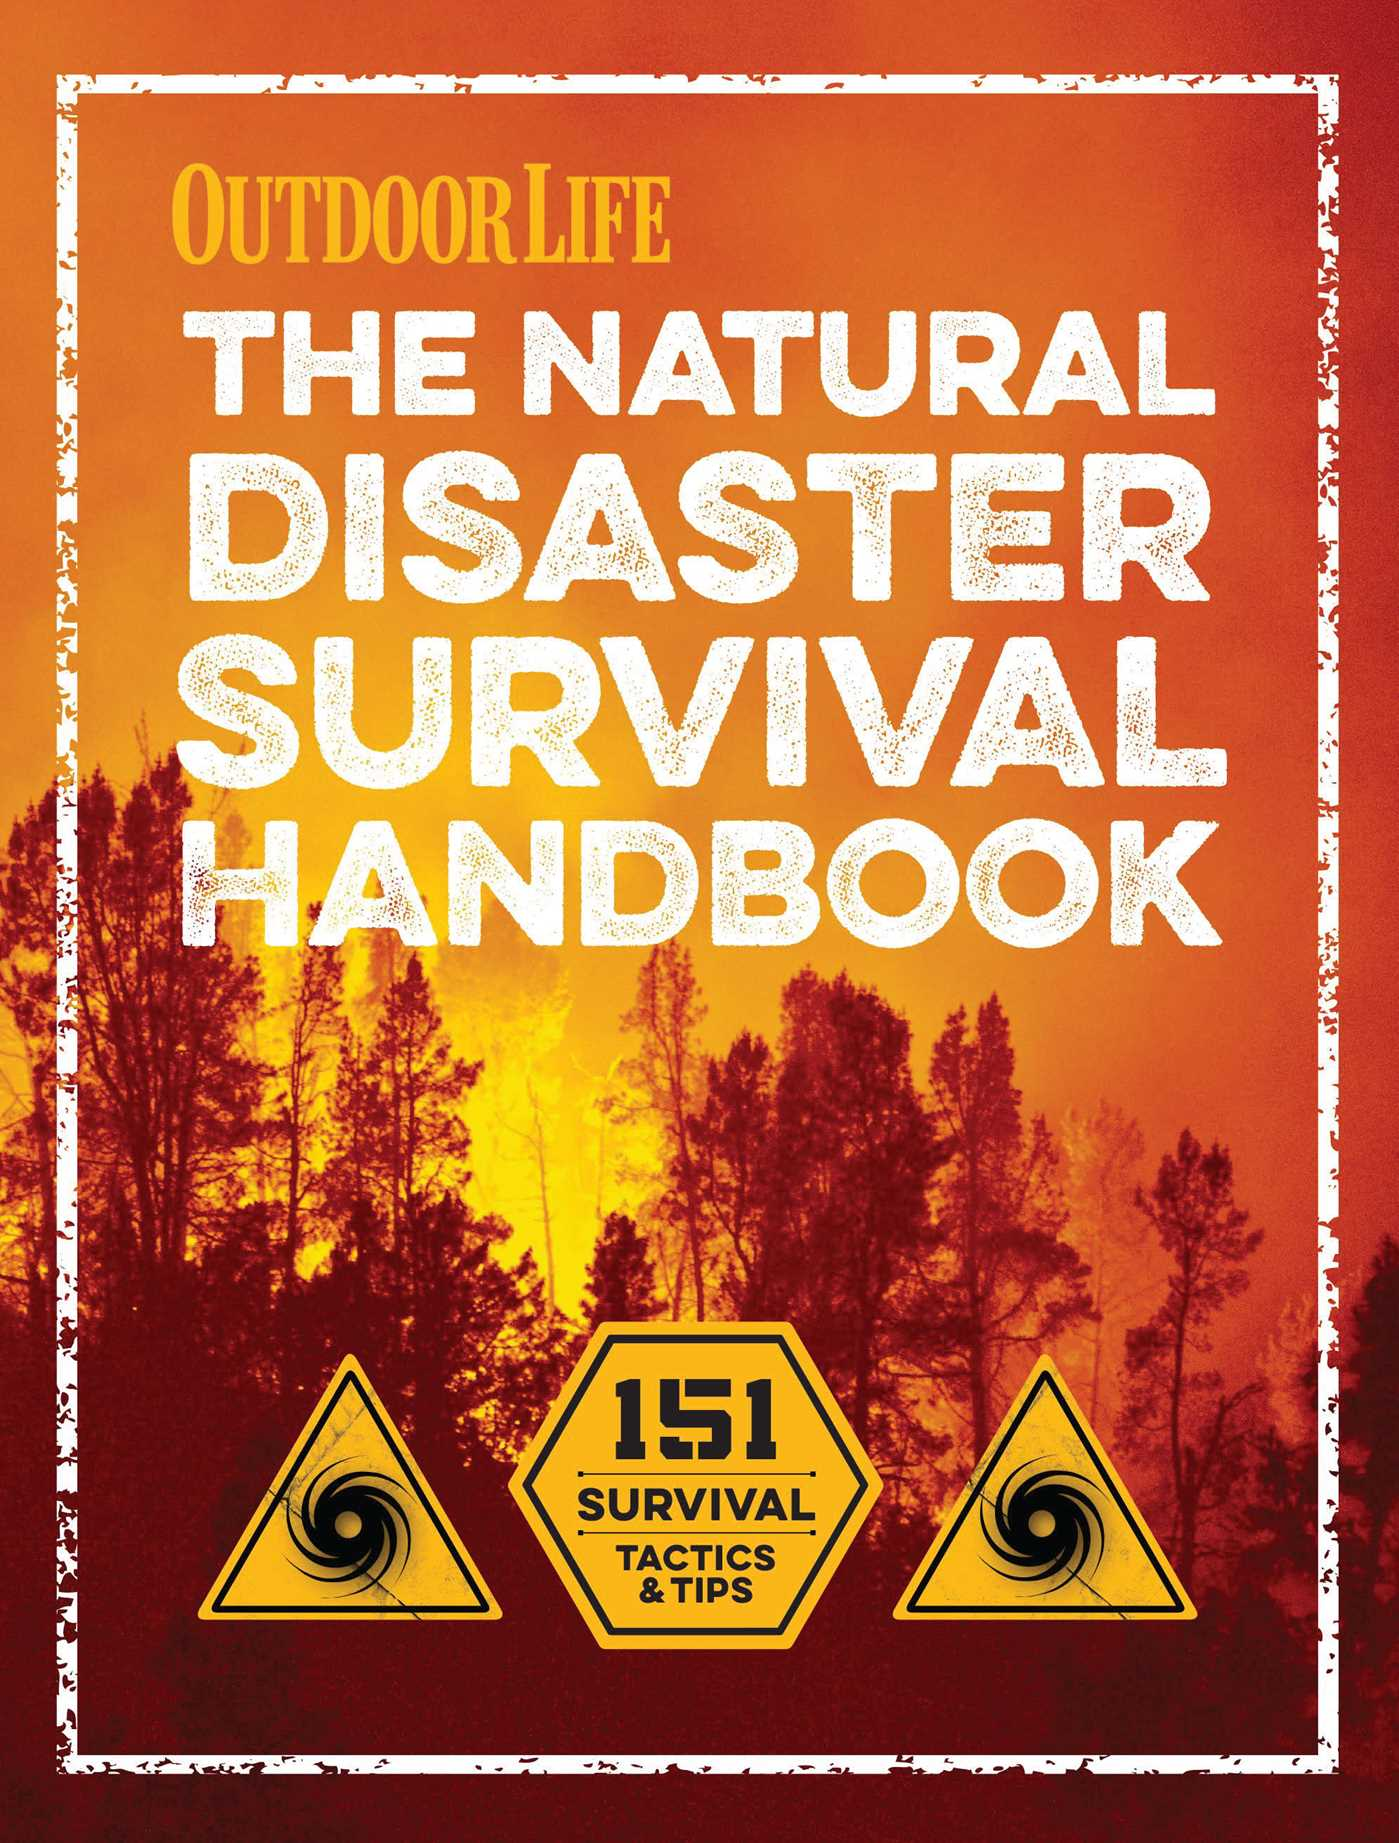 ba700d76dbc The Natural Disaster Survival Handbook | Book by The Editors of ...